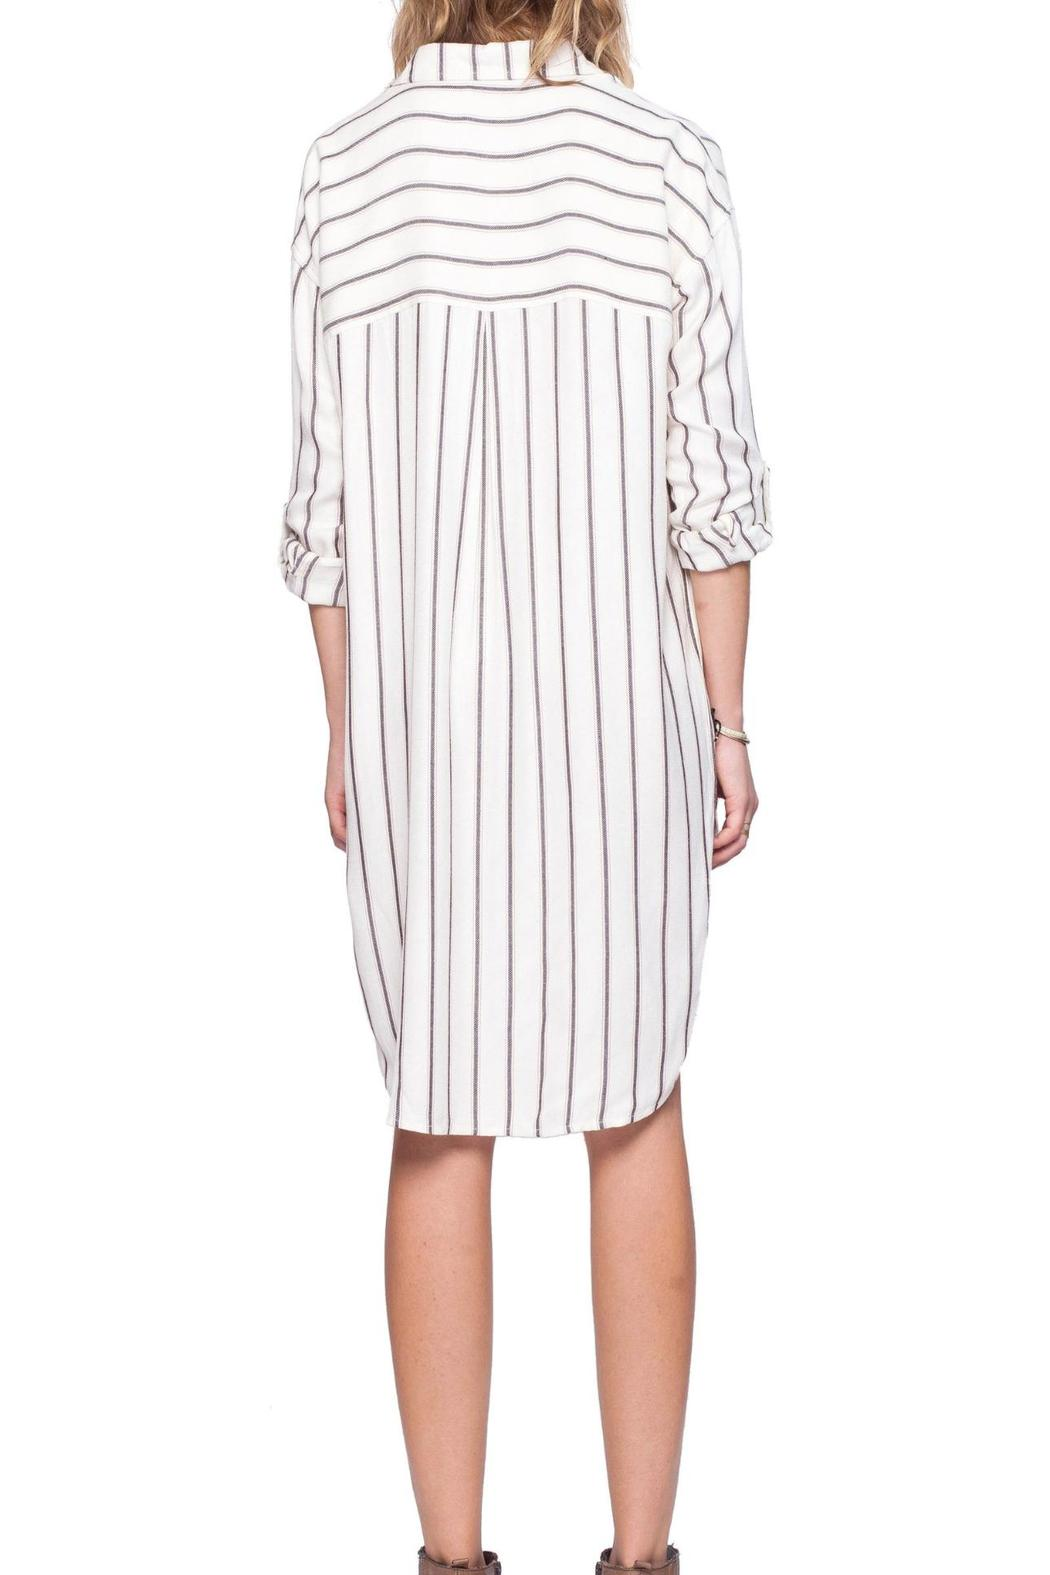 Gentle Fawn Striped Shirt Dress - Side Cropped Image